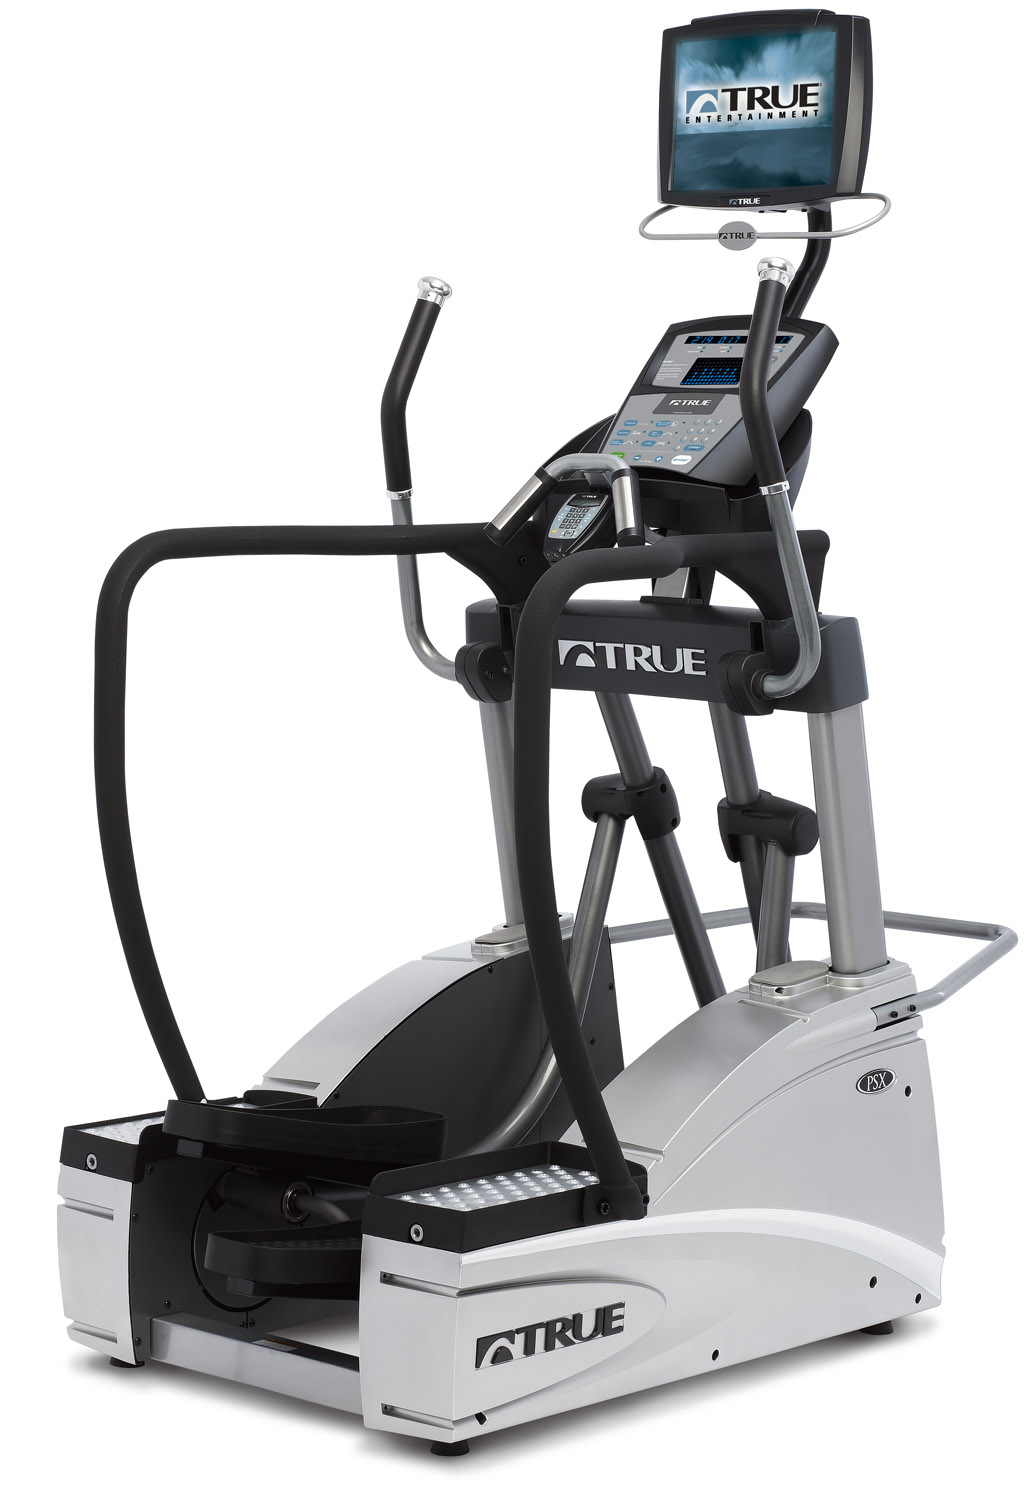 True Fitness XPS Elliptical